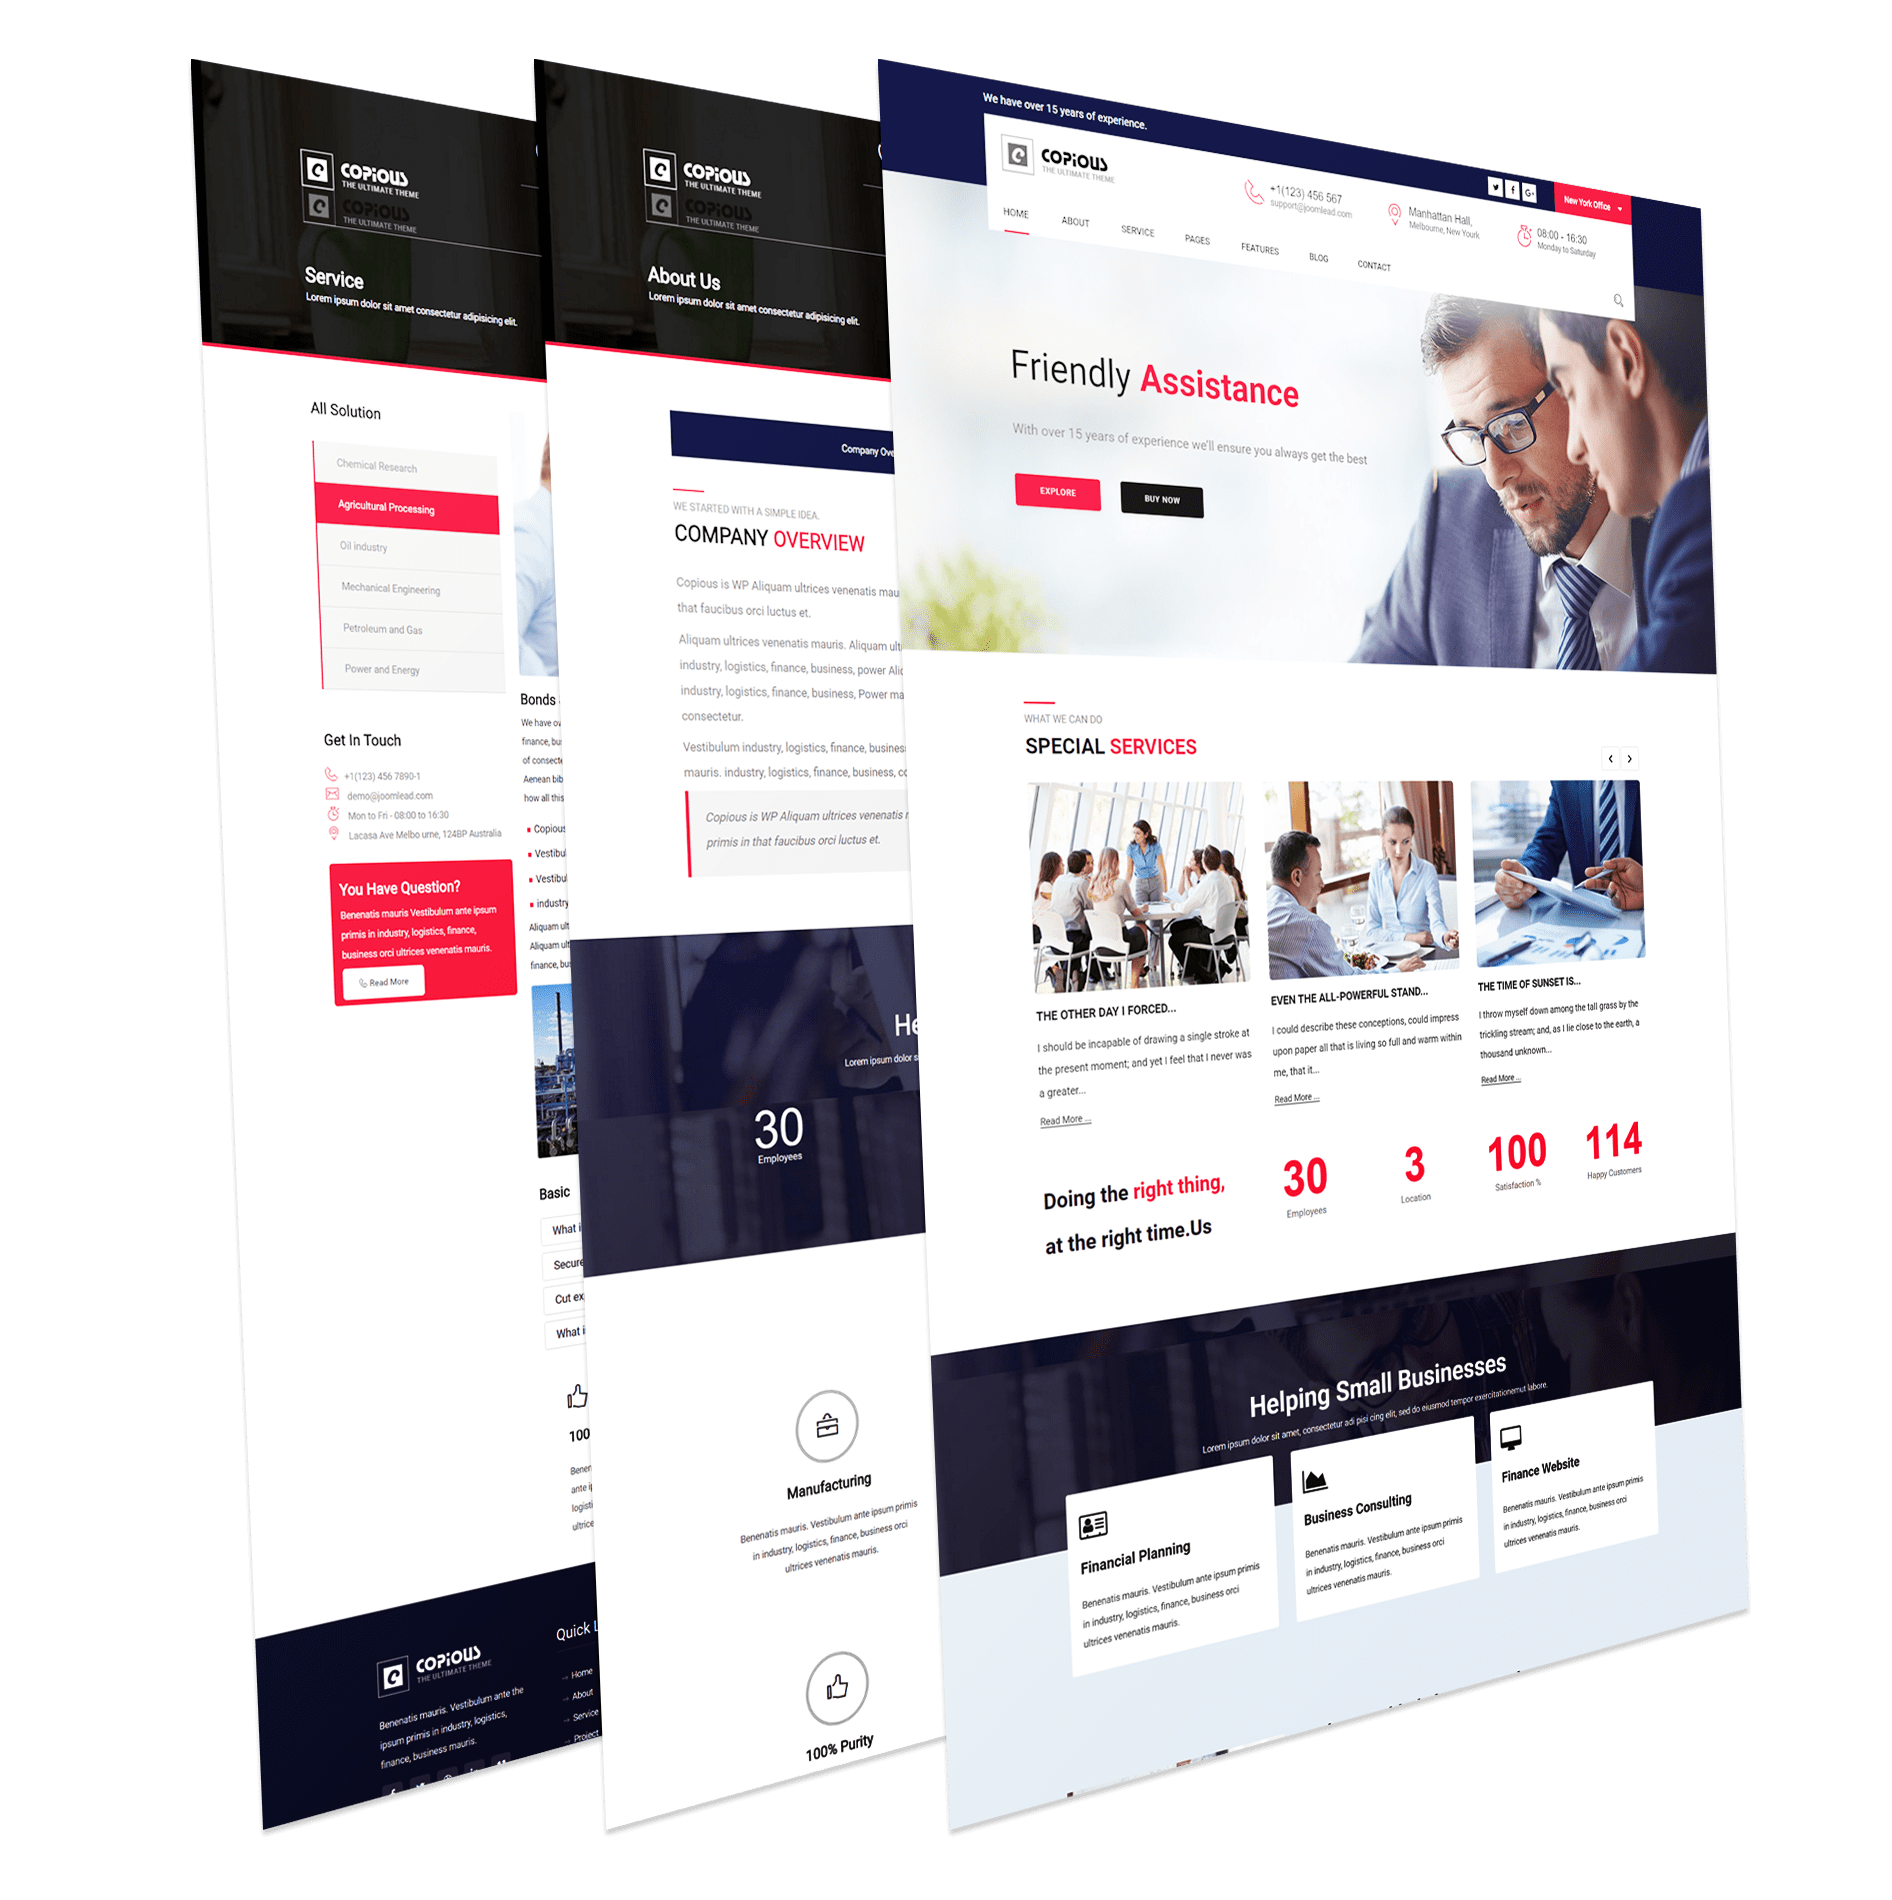 Copious - Joomla template that is help full for Corporate Business